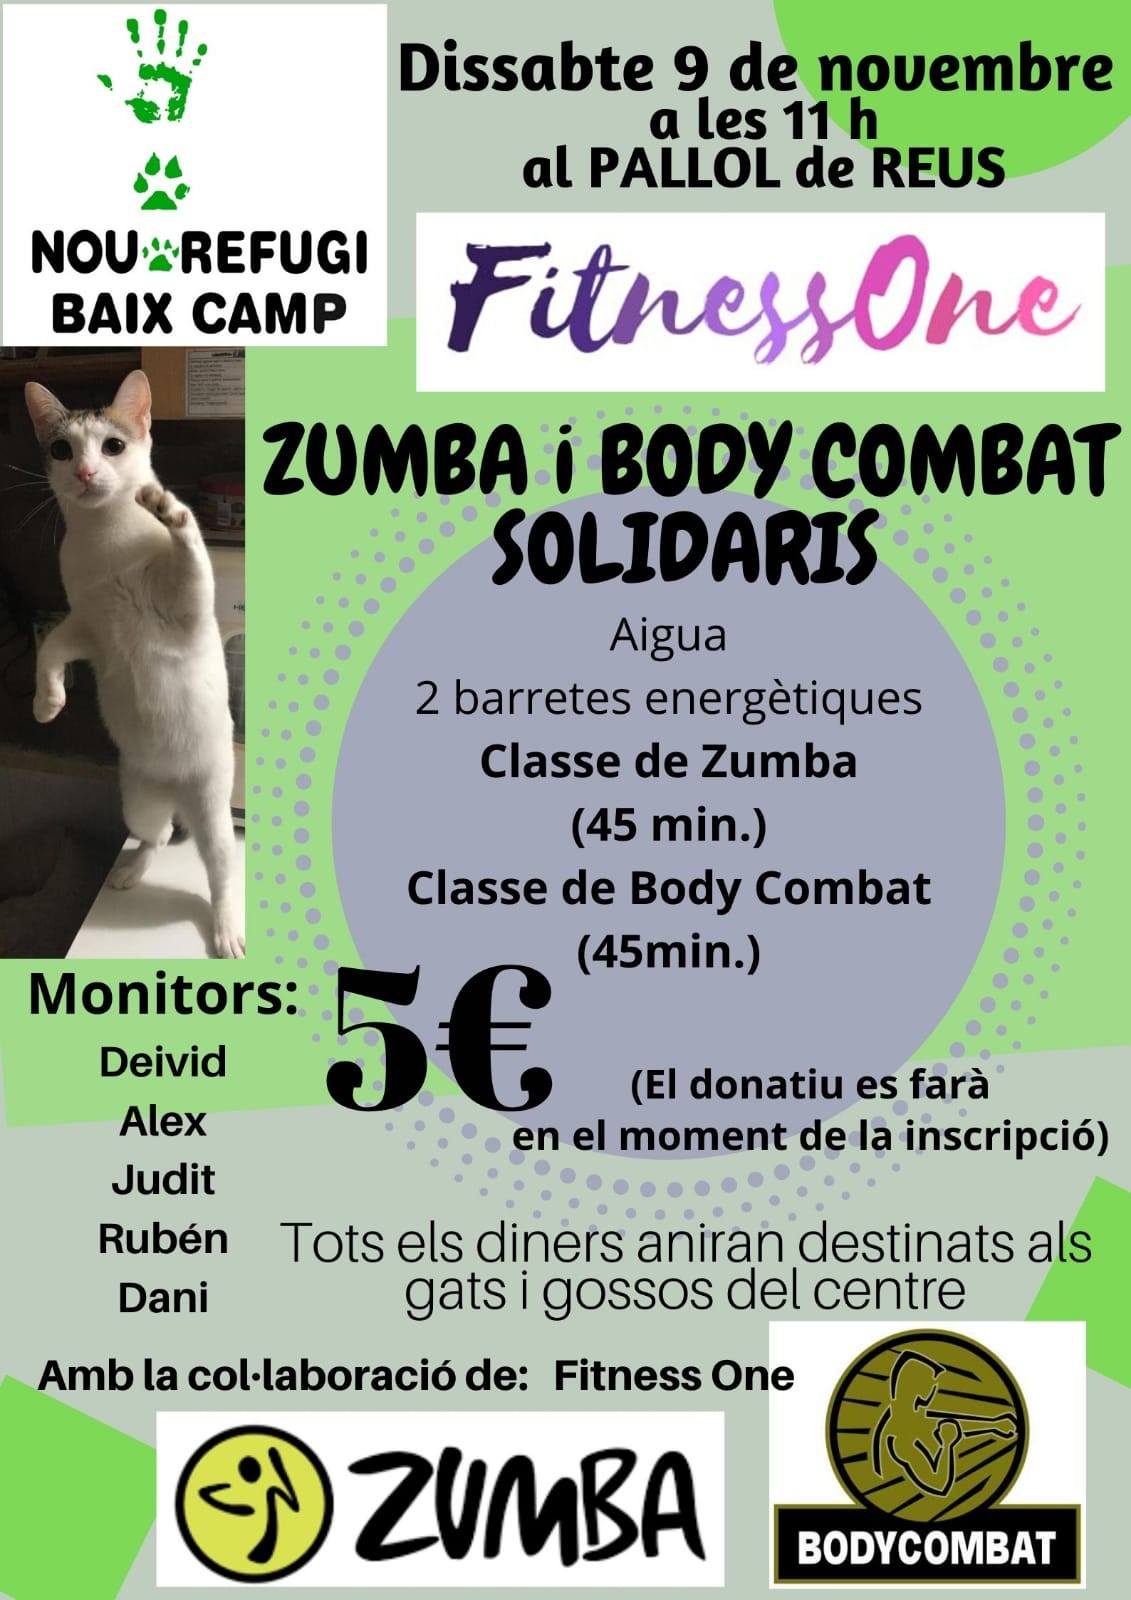 Zumba I Body Combat Solidaris – FITNESSONE